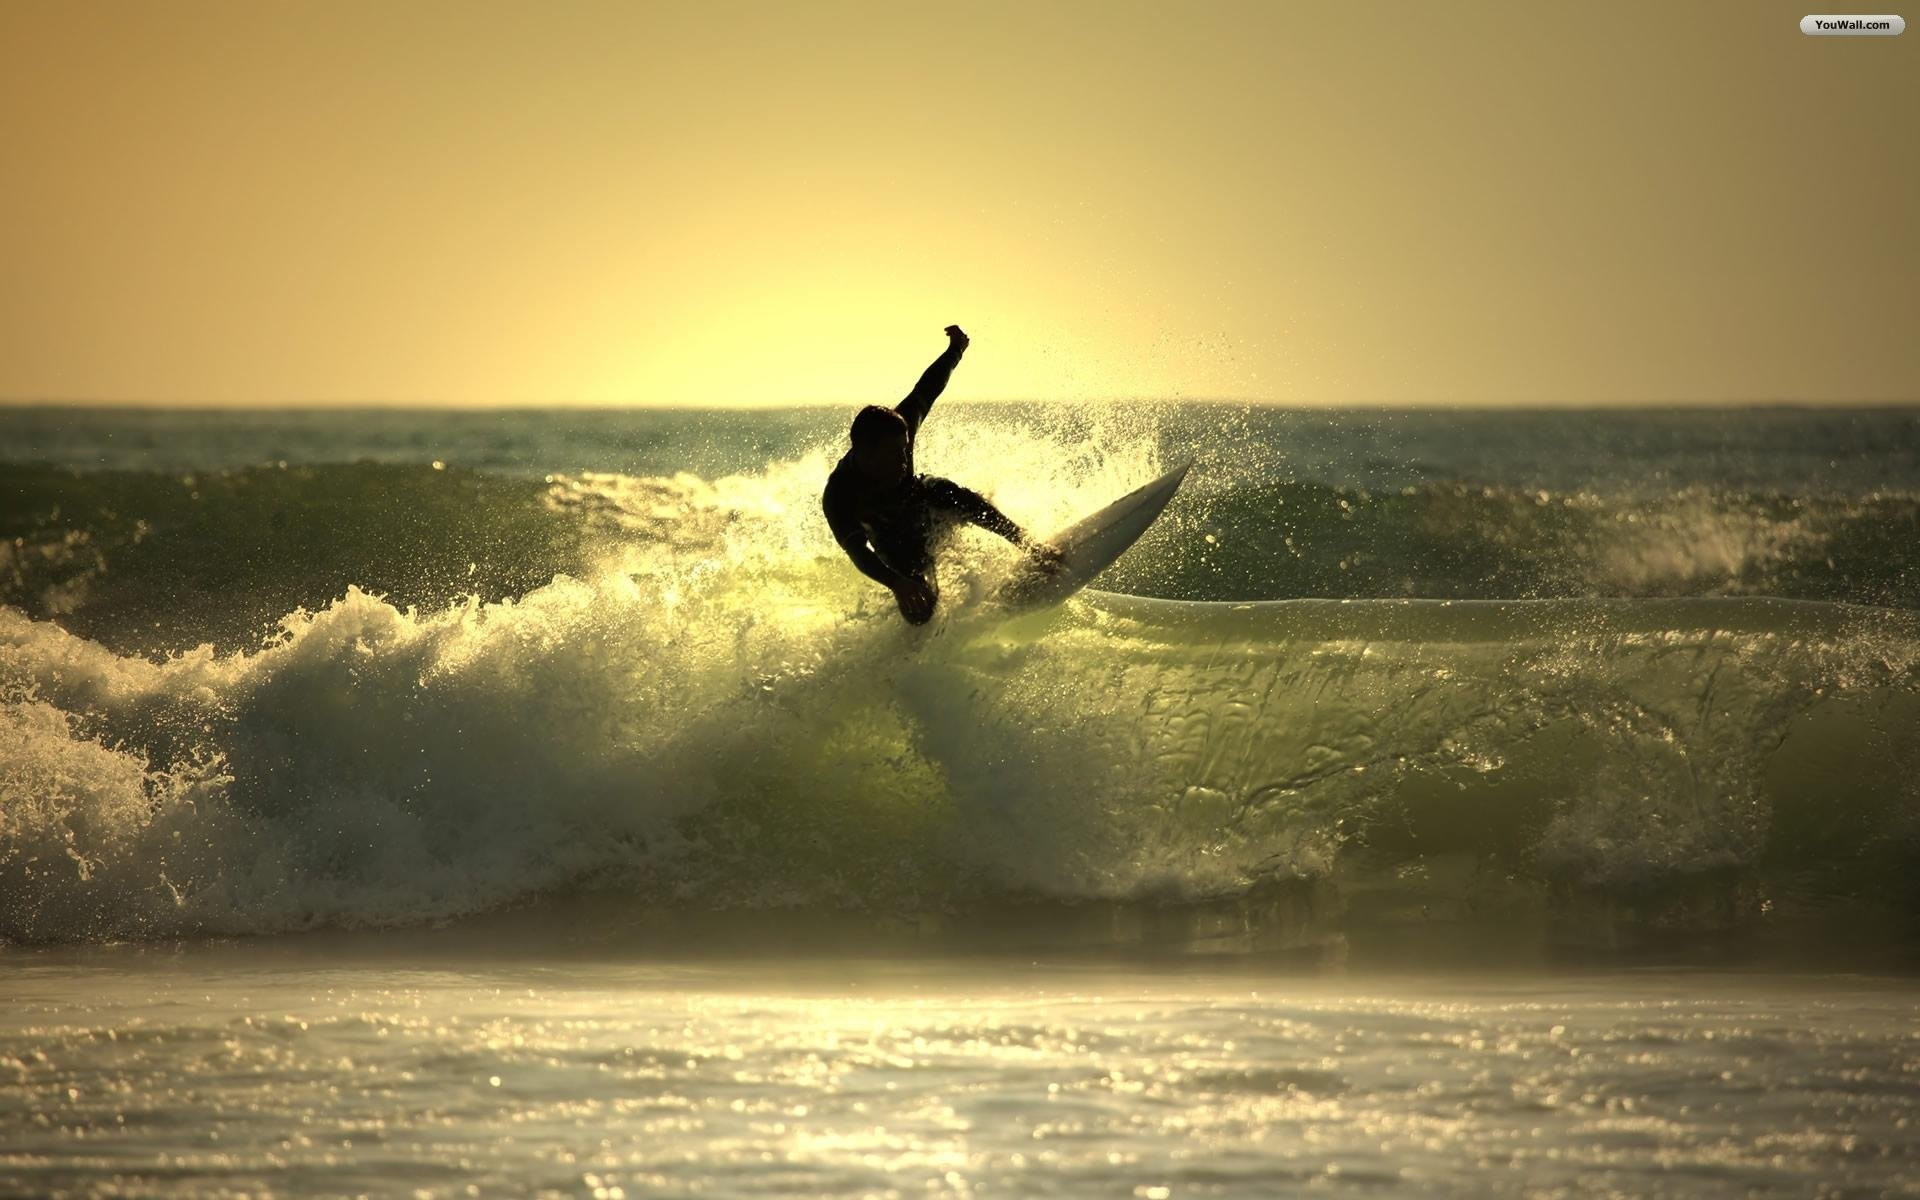 Great Wave Surfing hd Wallpaper   High Quality Wallpapers,Wallpaper .